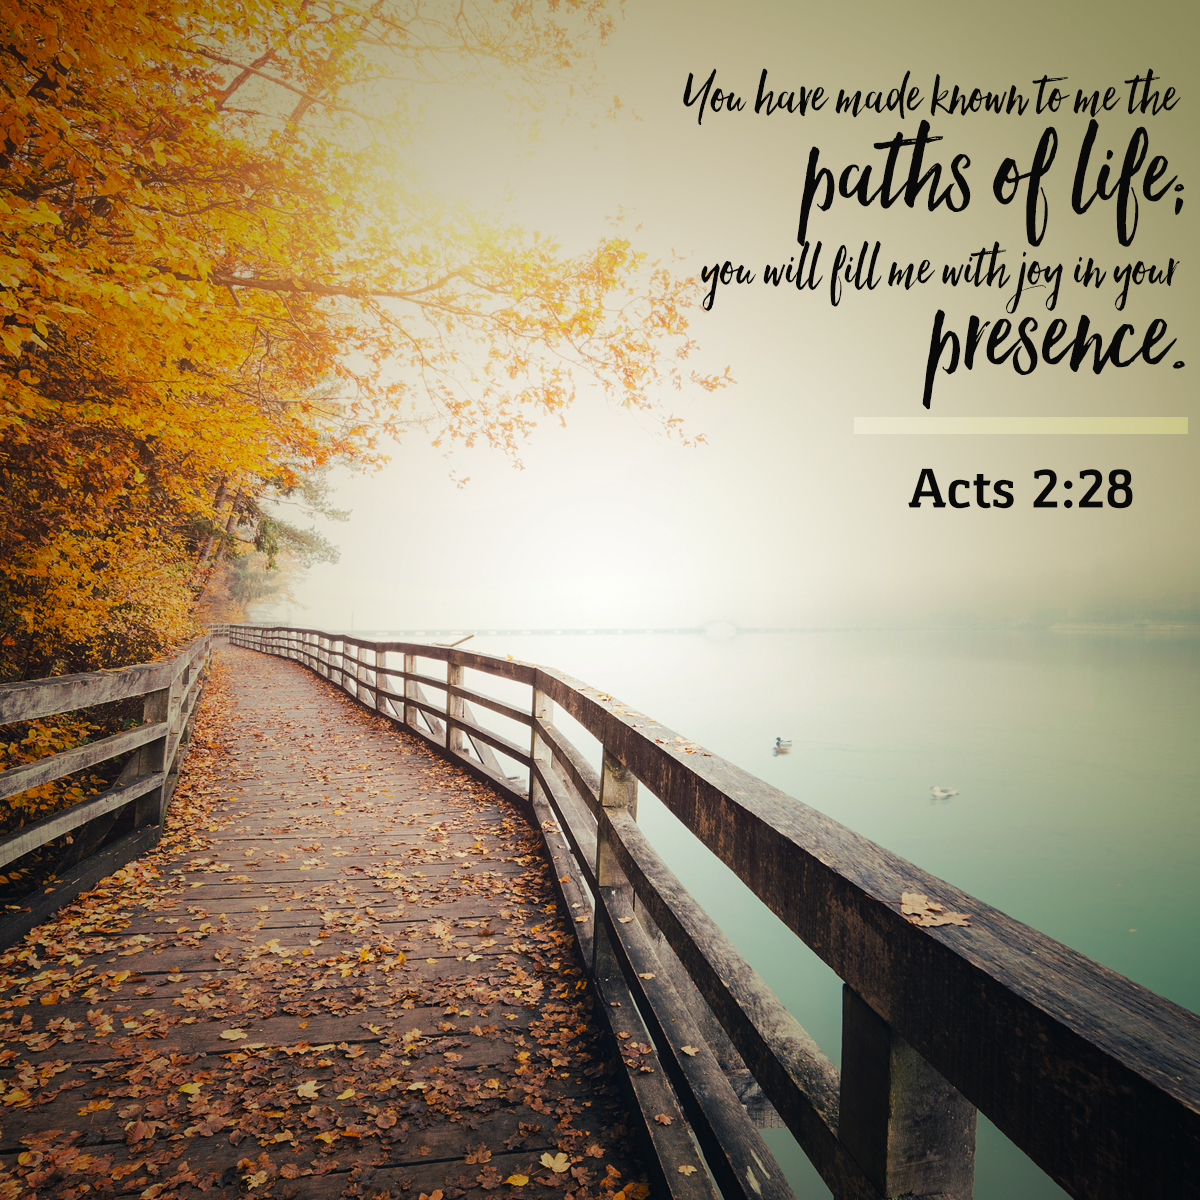 Acts 2:28